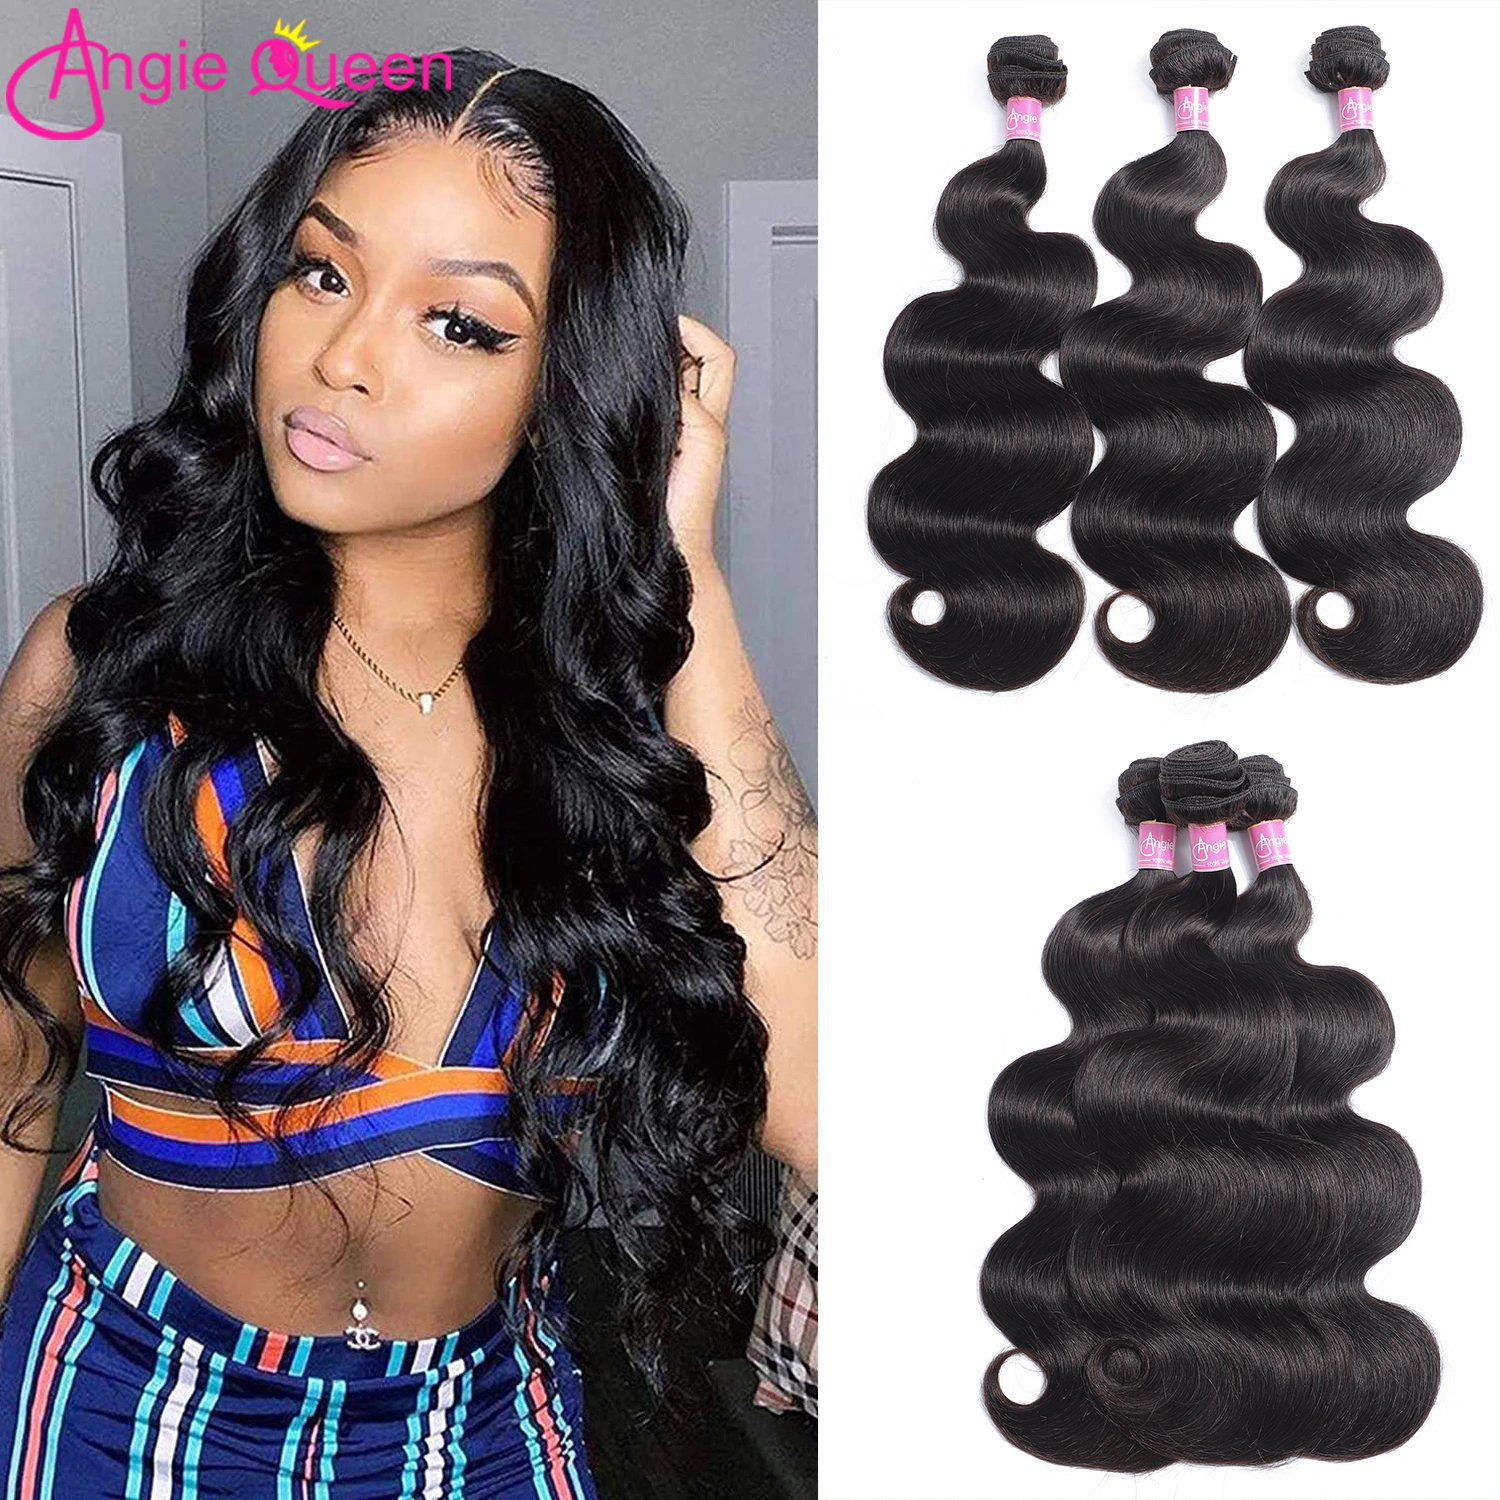 ANGIE QUEEN Body Wave Hair Bundles 100% Human Hair Weaves Brazilian Remy Hair 3 Bundles Natural Color Hair Extension 8-26Inches